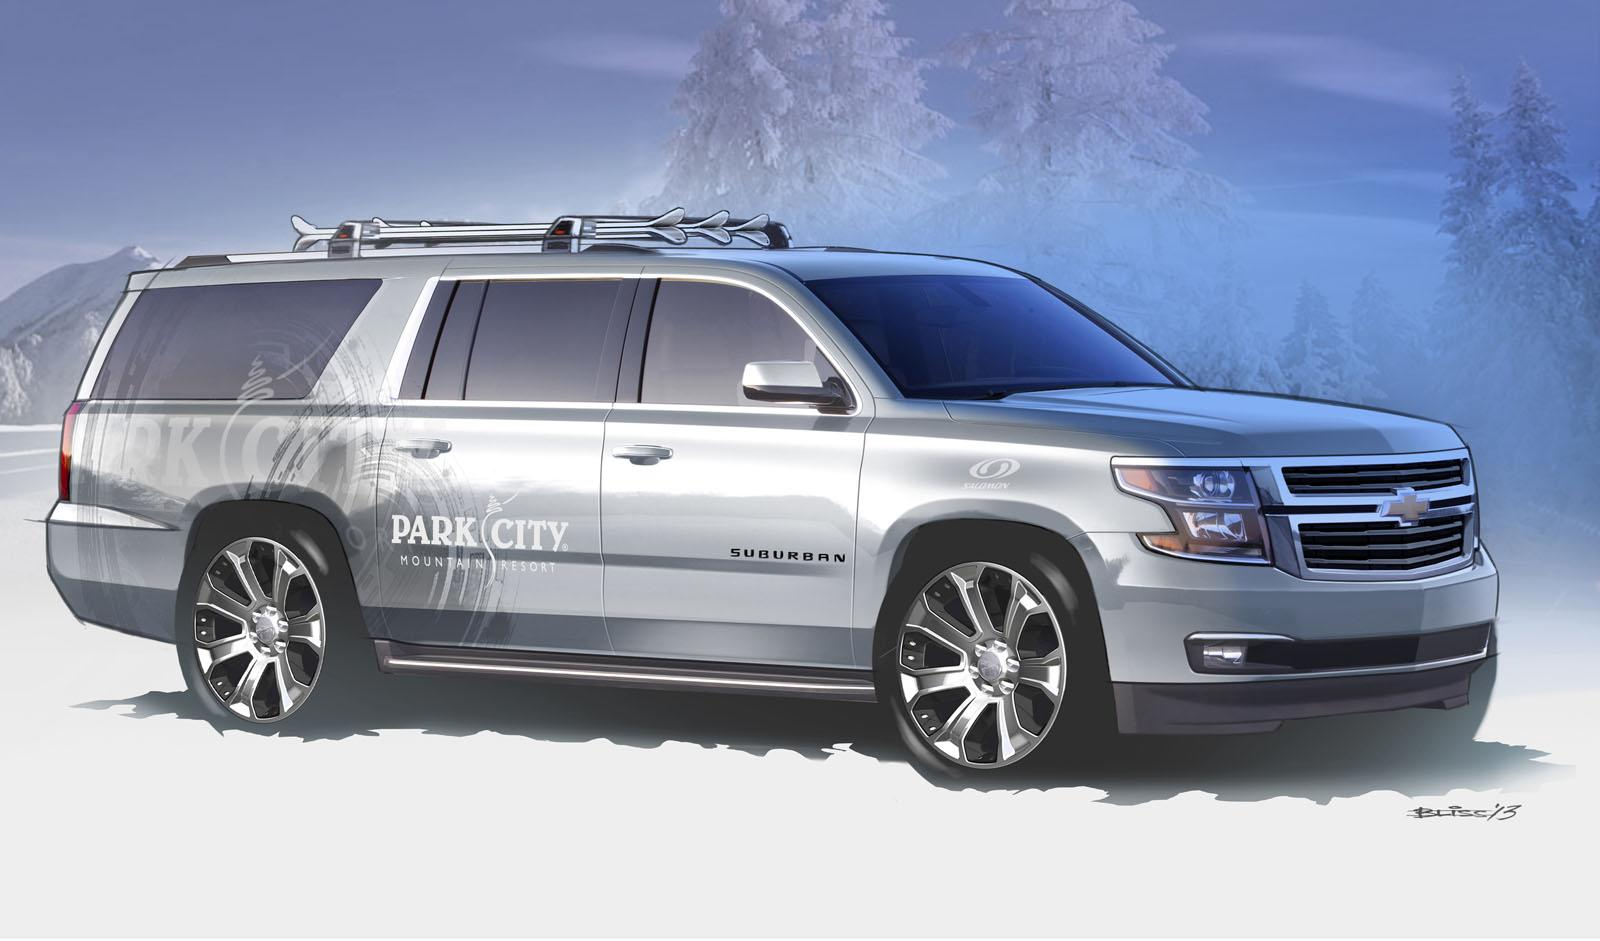 2015 Chevrolet Suburban Half-Pipe Concept Review - Top Speed